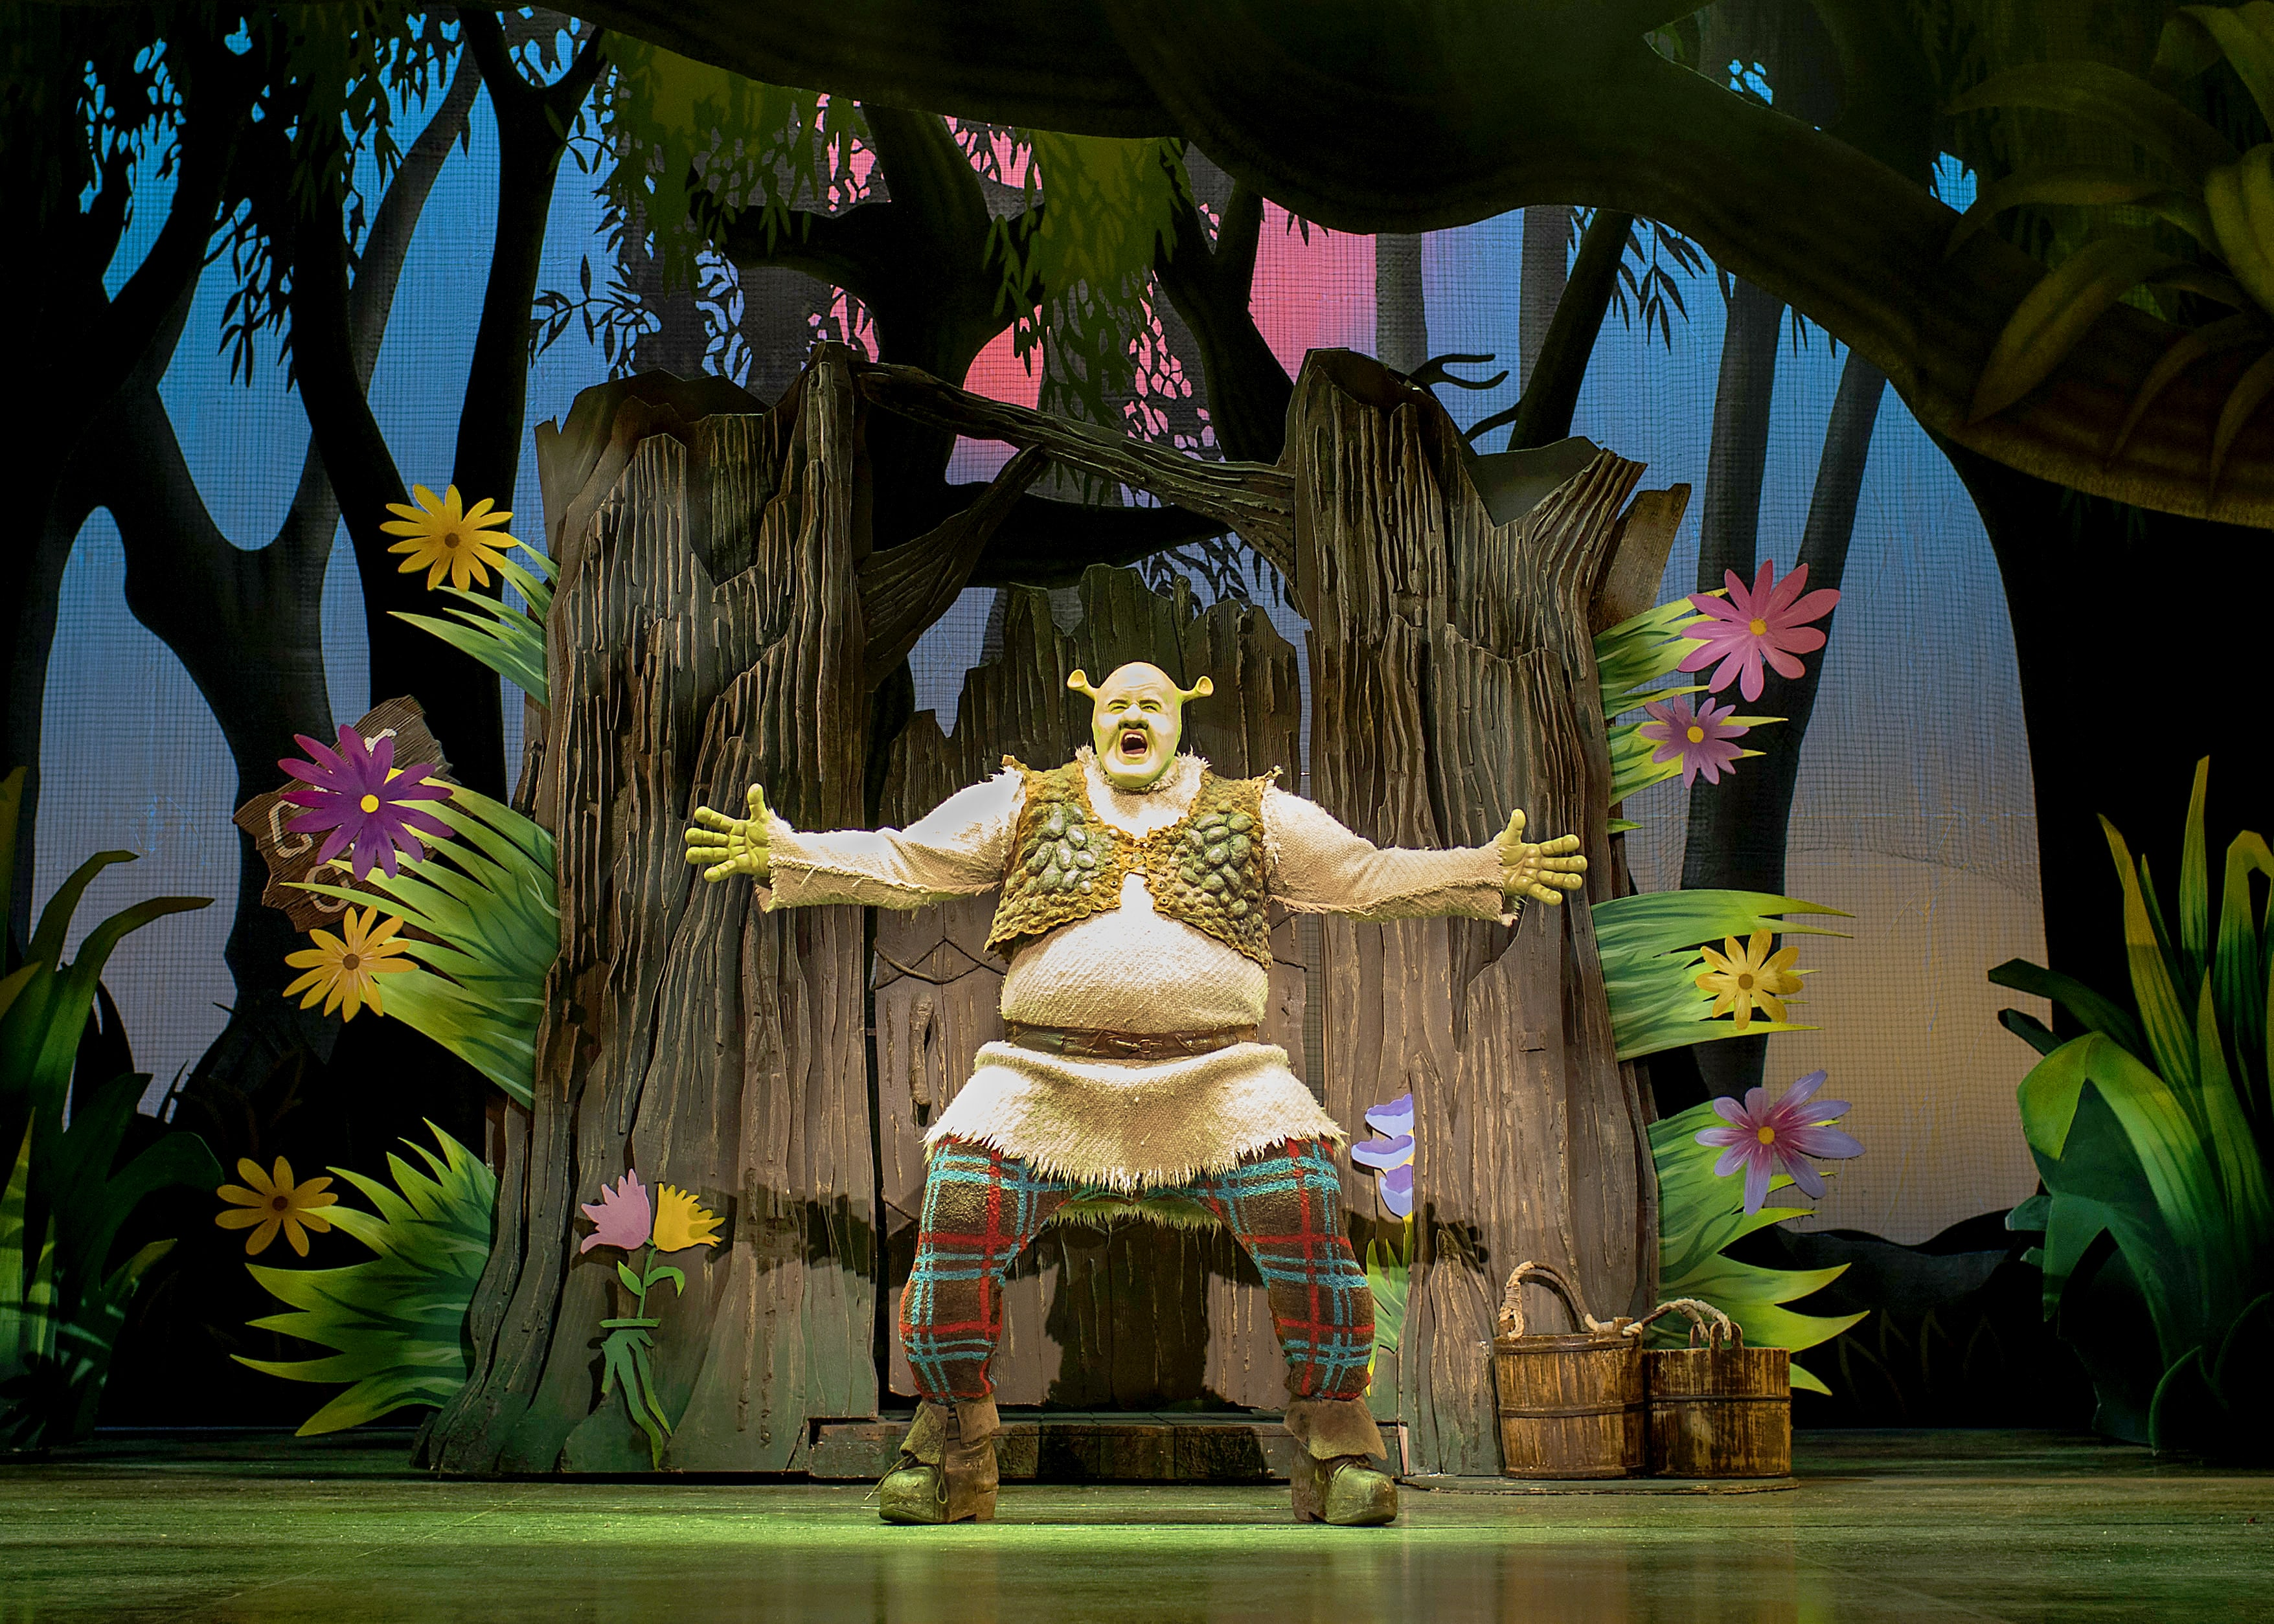 Top Grossing Artists 2020.Shrek The Musical Coming To Australia In 2020 Dance Life